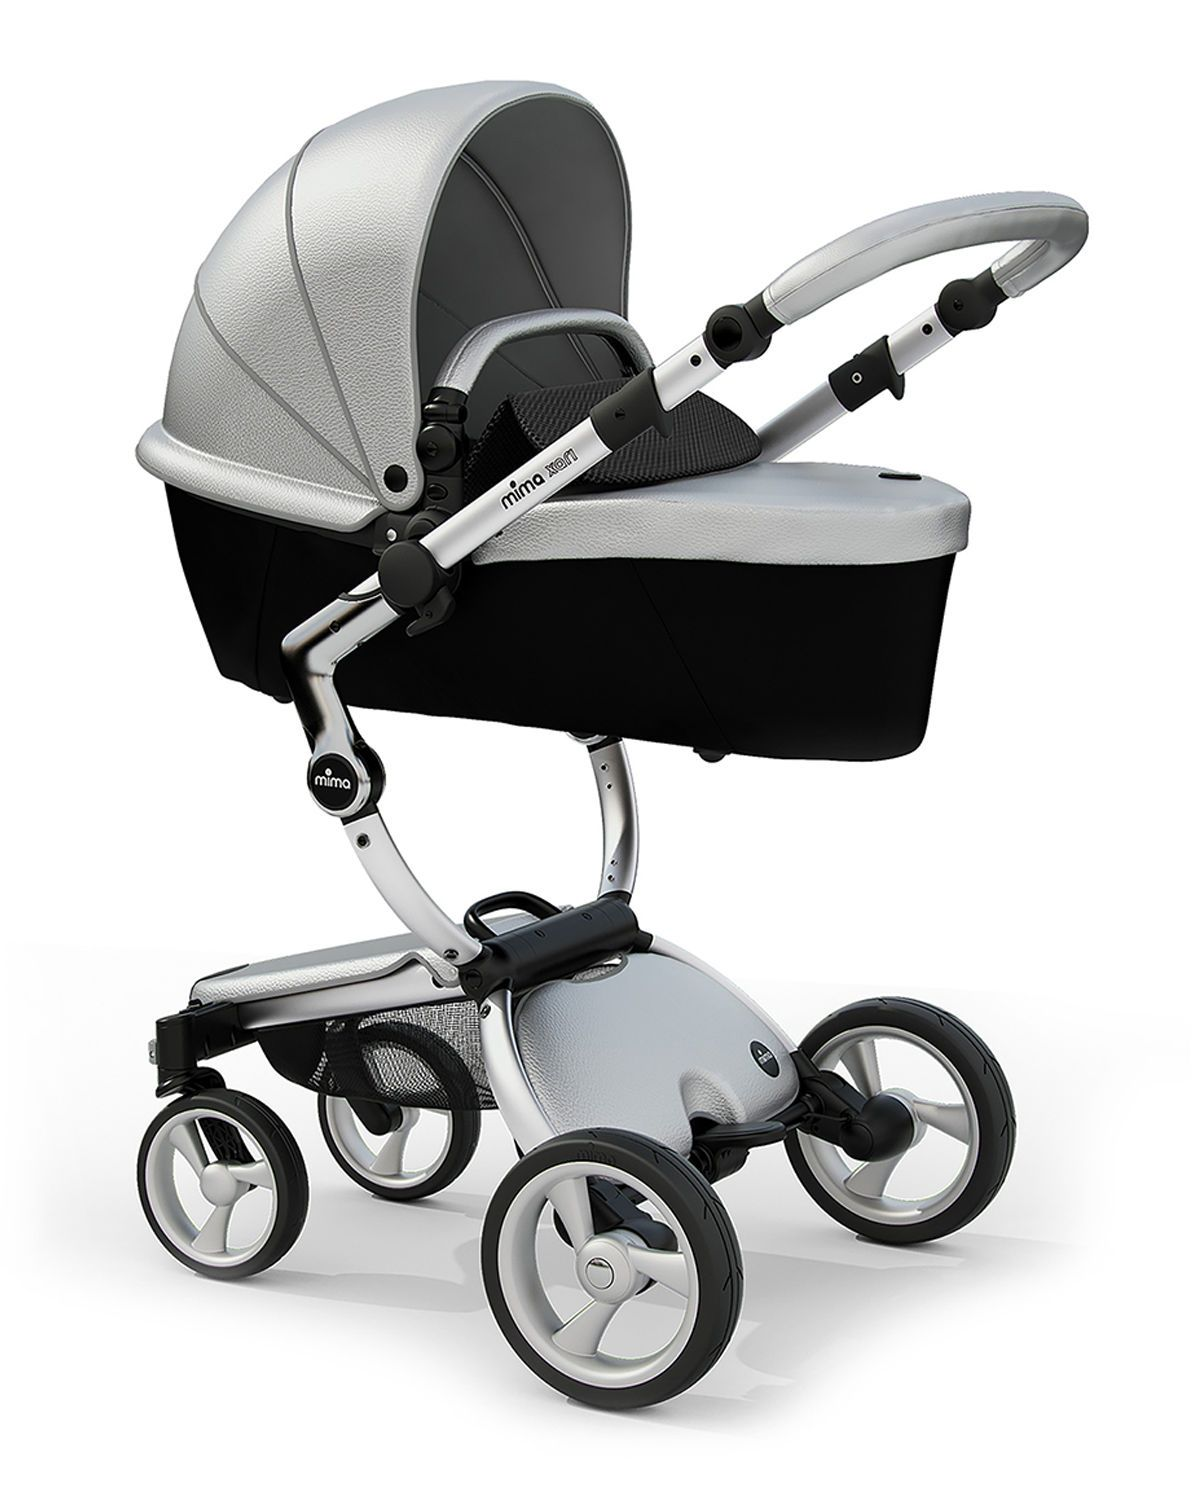 Mima Xari Stroller Chassis Baby strollers, Baby gear